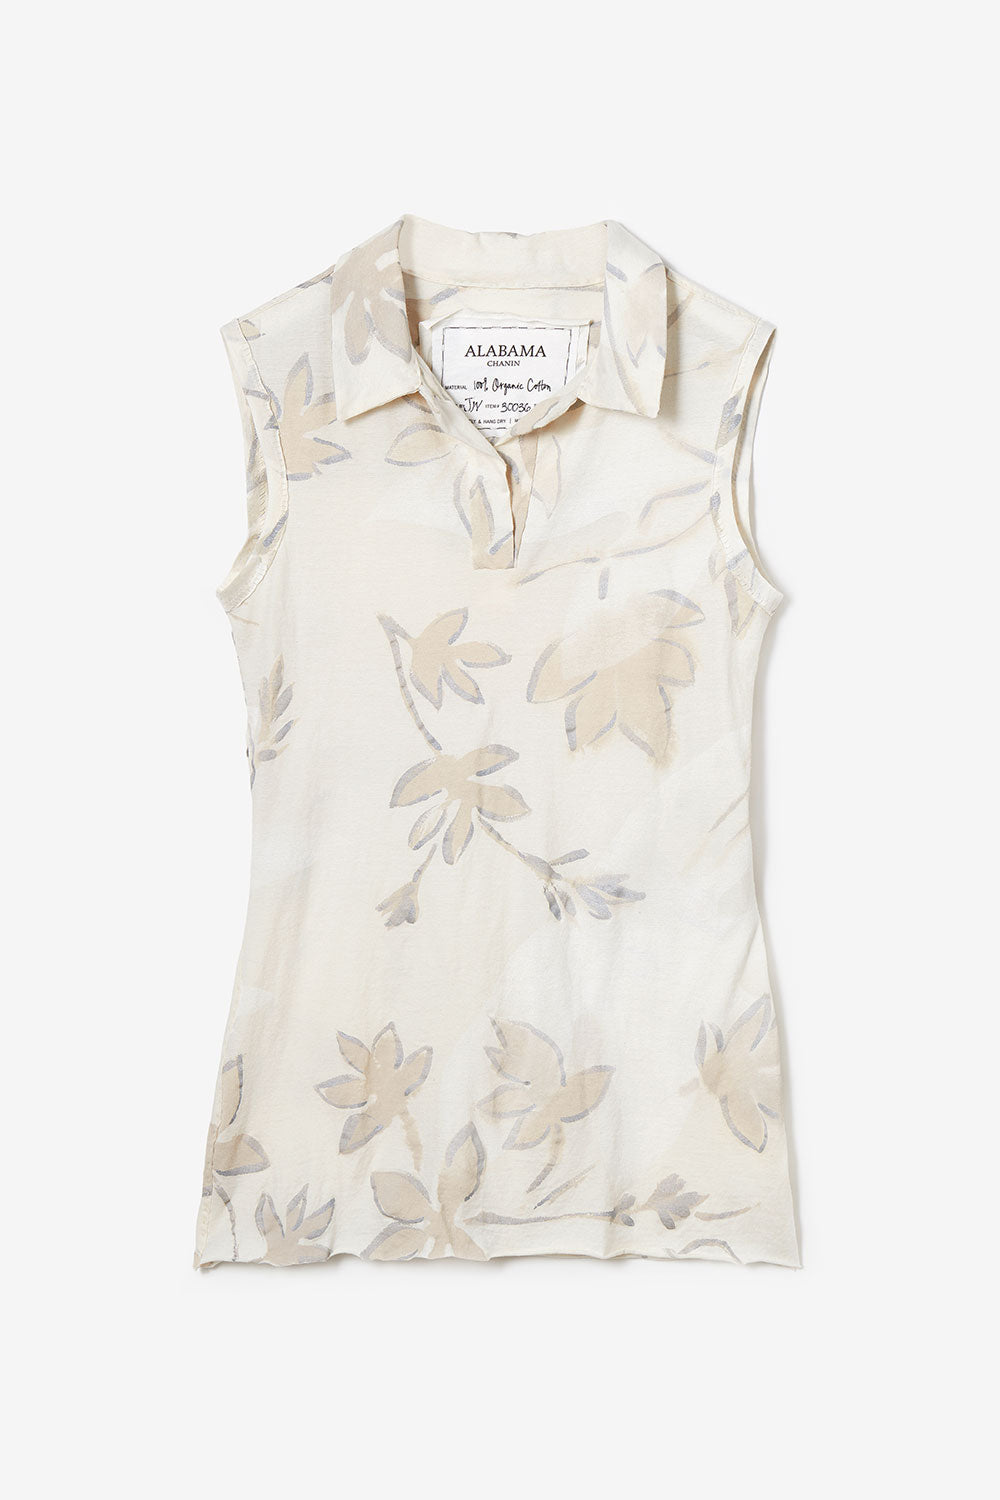 Alabama Chanin The Florence Polo Sleeveless Hand Sewn Women's Polo with Hand-painted Floral Print